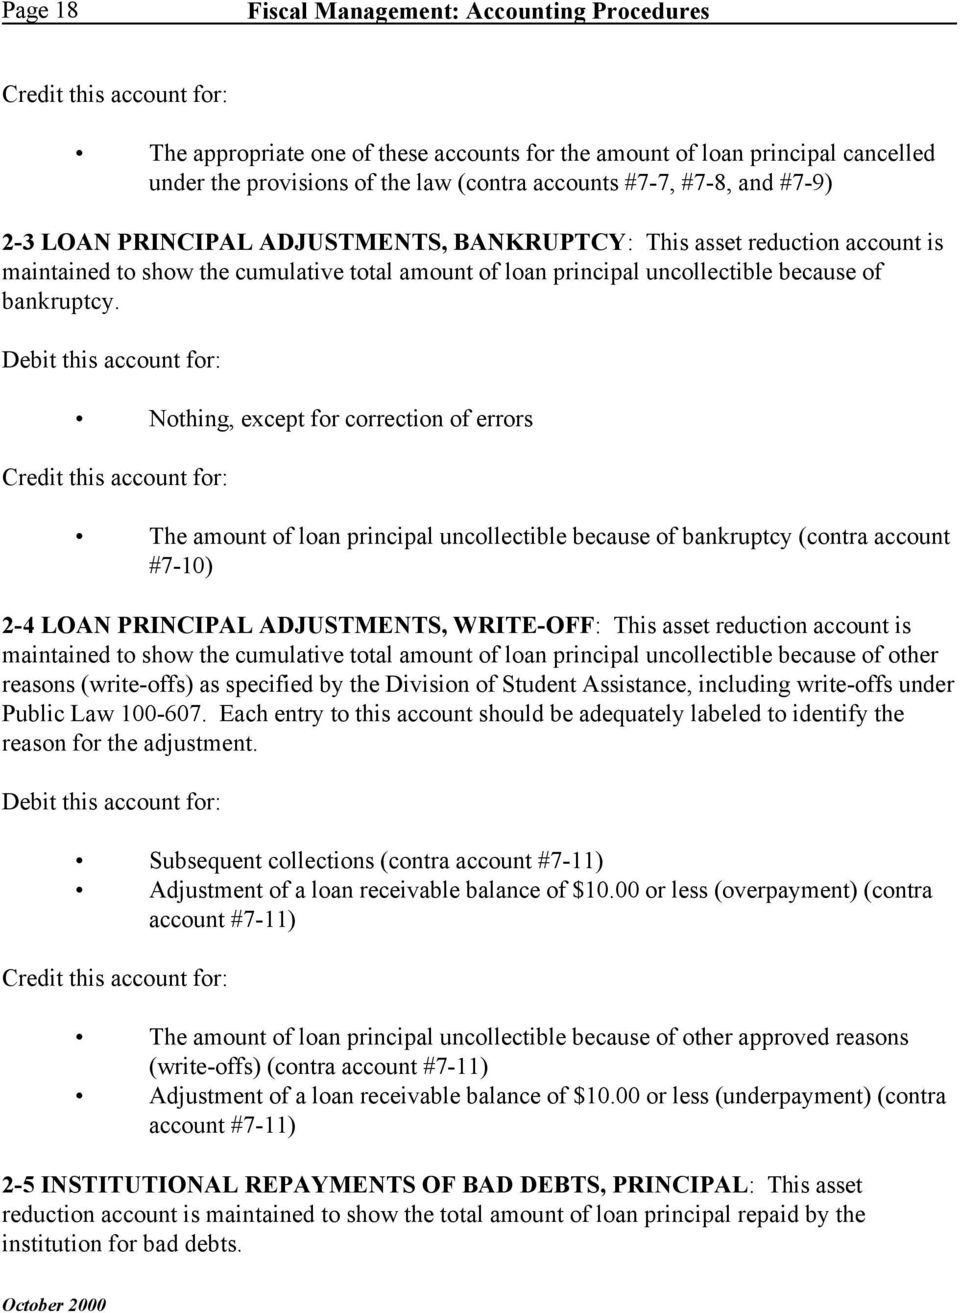 Nothing, except for correction of errors The amount of loan principal uncollectible because of bankruptcy (contra account #7-10) 2-4 LOAN PRINCIPAL ADJUSTMENTS, WRITE-OFF: This asset reduction